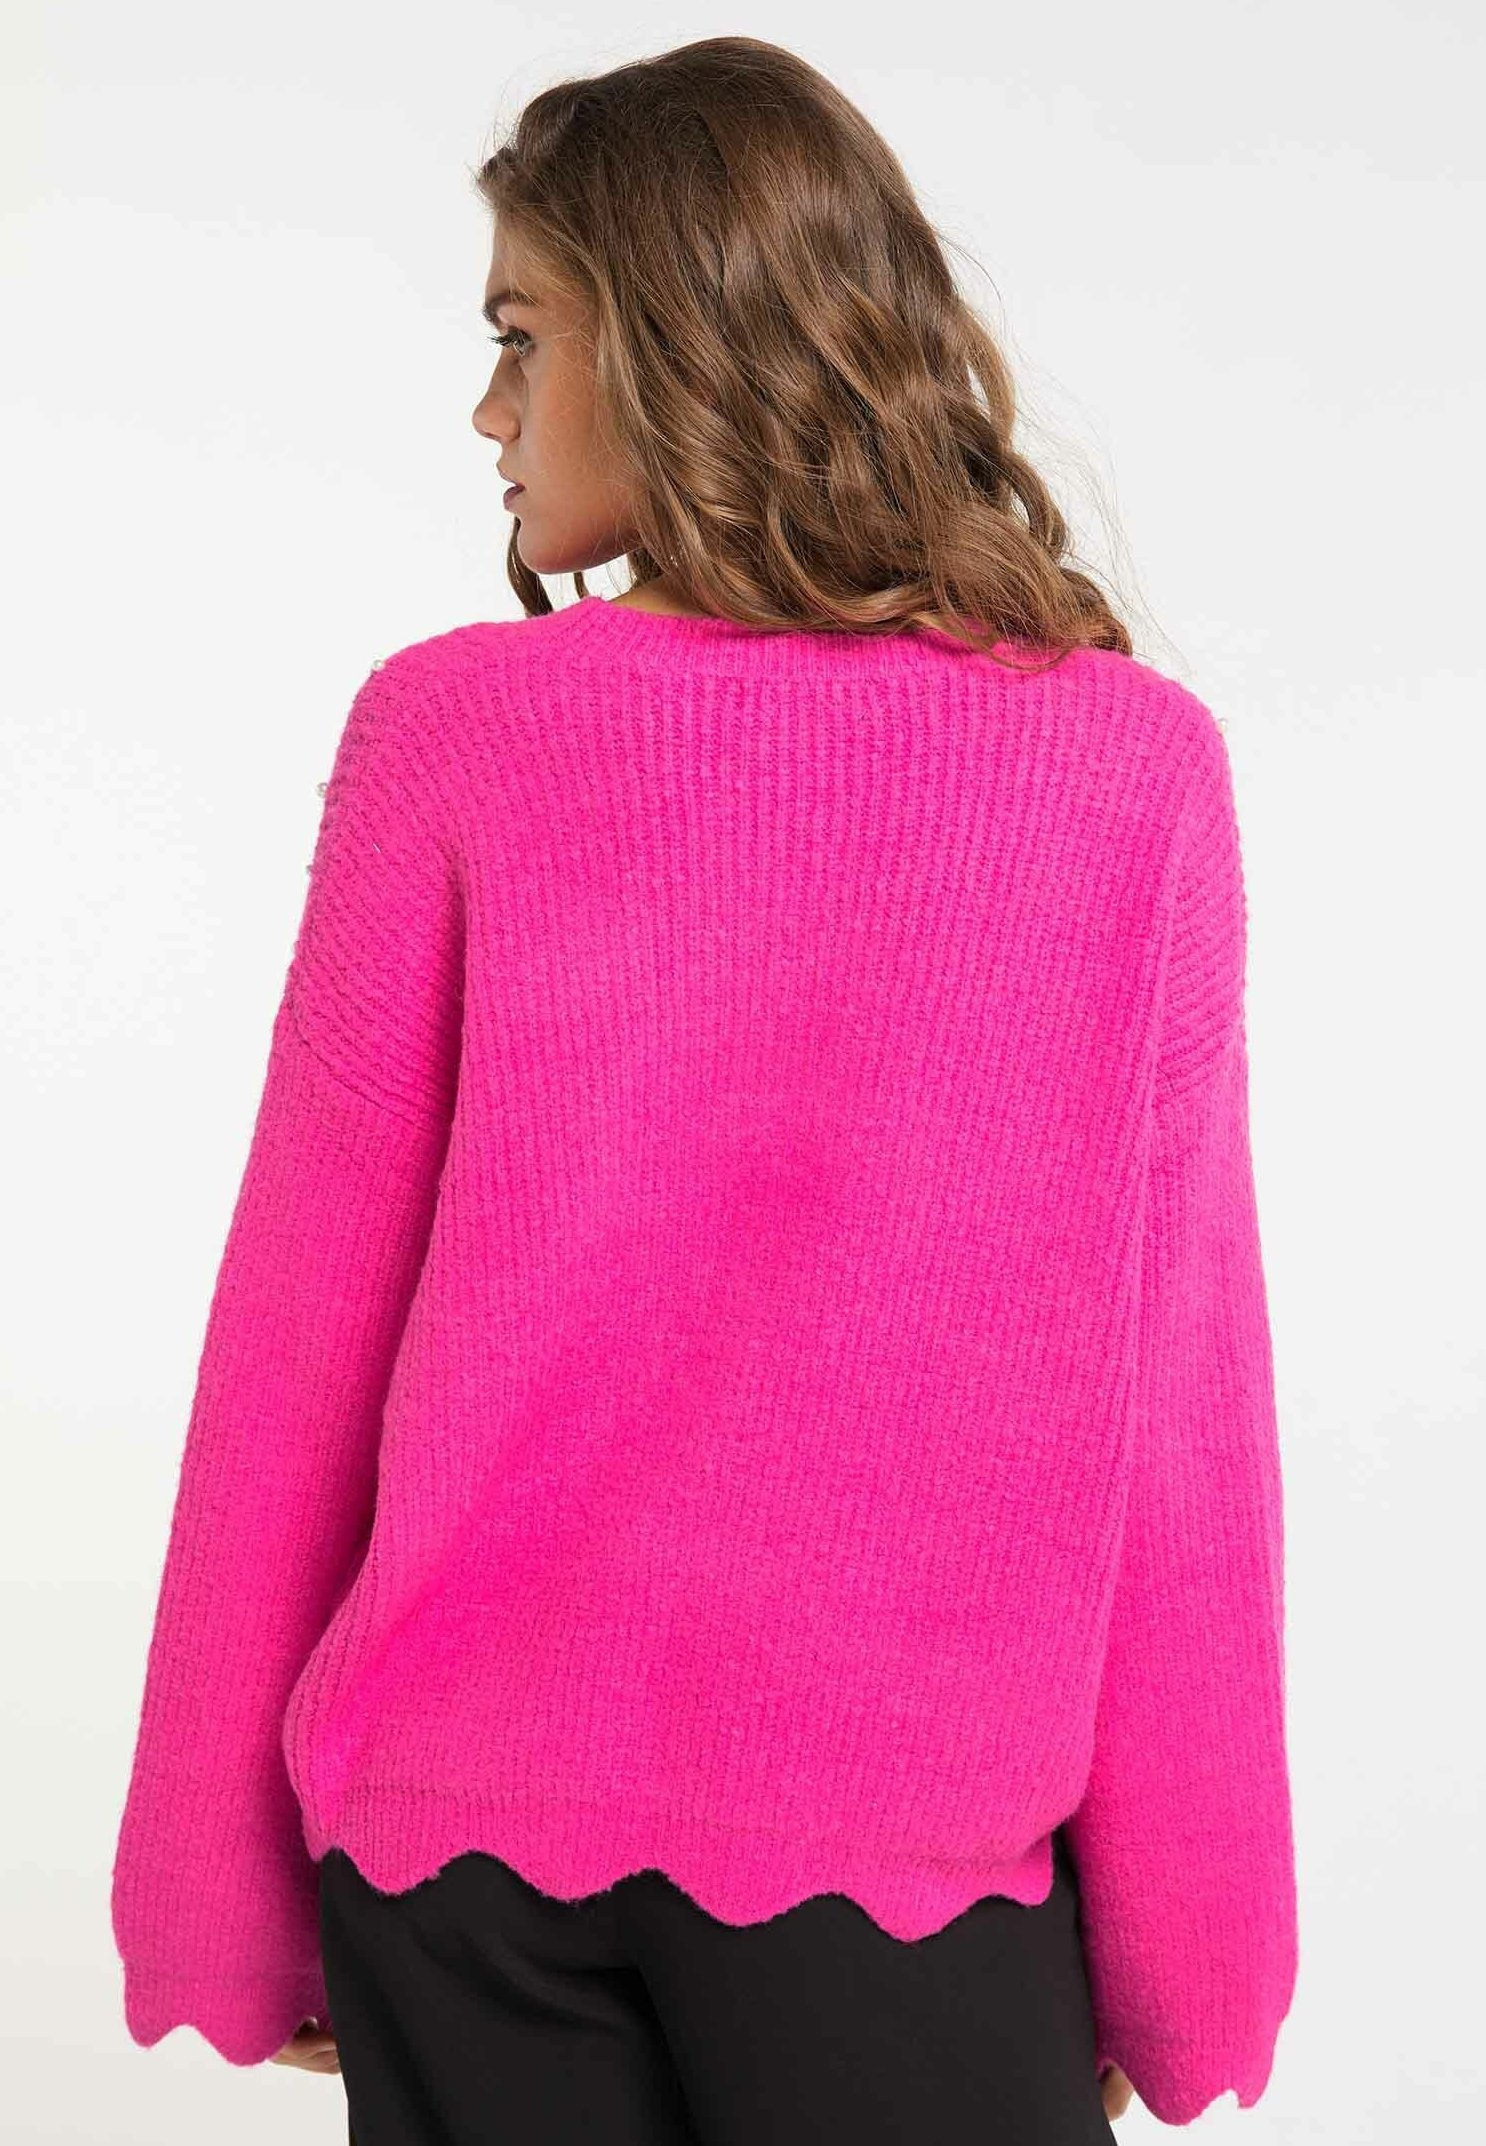 2020 New Factory Outlet Women's Clothing faina Jumper pink eCL613RYI yN8ZXlcue